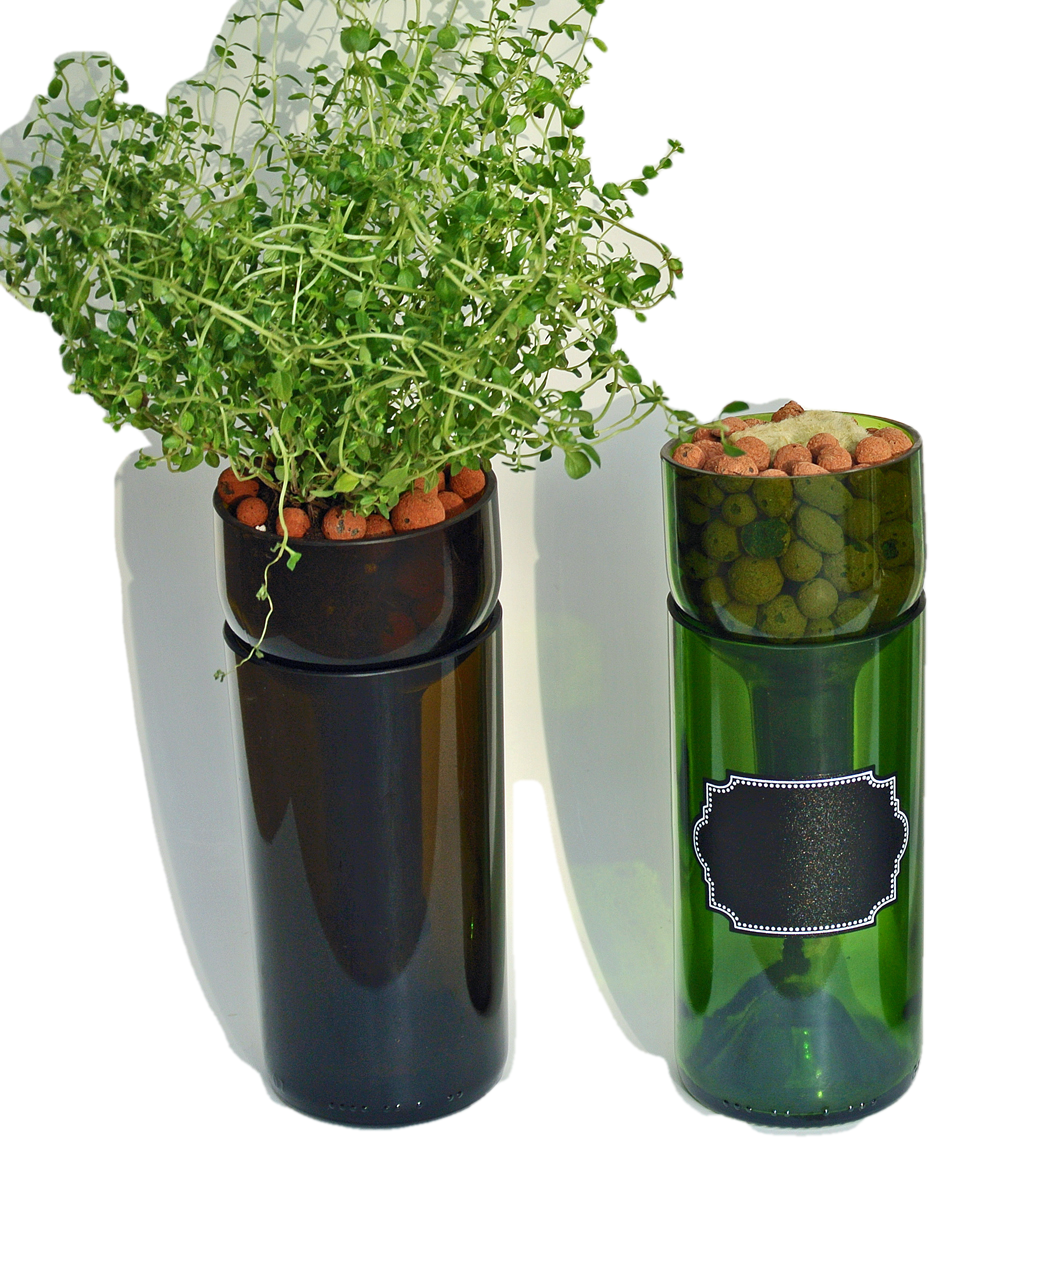 ... TWO Self Watering Hydroponic Gardens   Wine Bottle Indoor Herb Garden  For Your Kitchen   Herbs ...